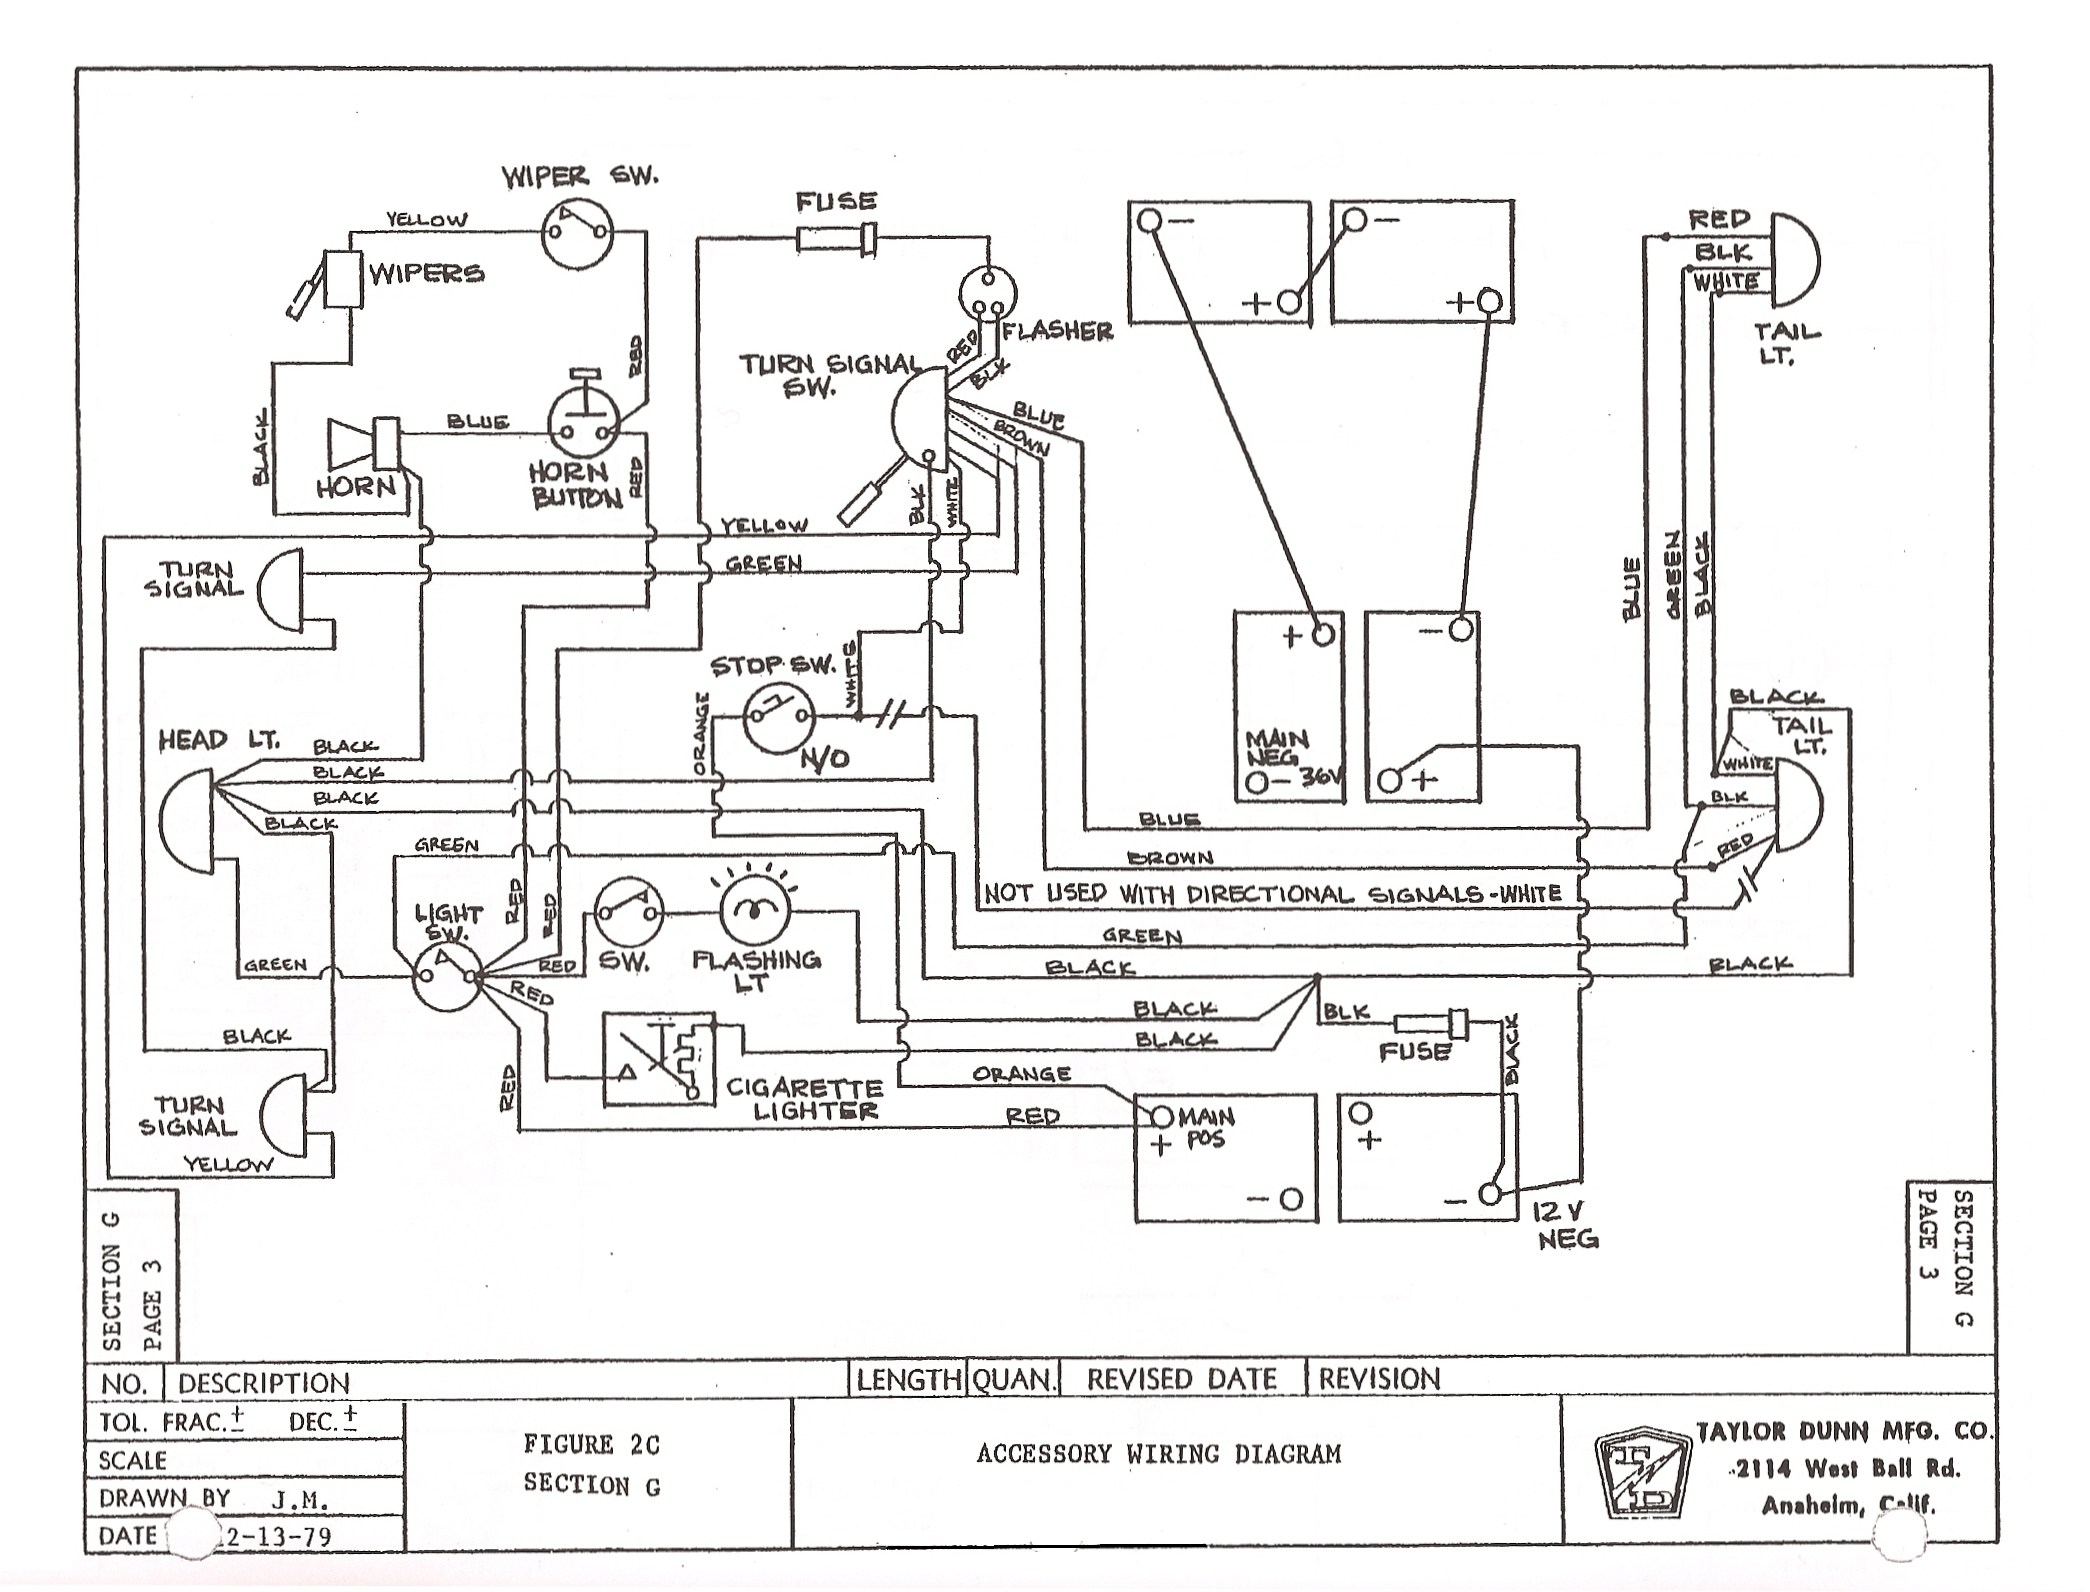 TD_GT370_71_81to85_003 taylor dunn b2 48 wiring diagram taylor dunn b210 manual \u2022 wiring taylor dunn parts diagram at suagrazia.org